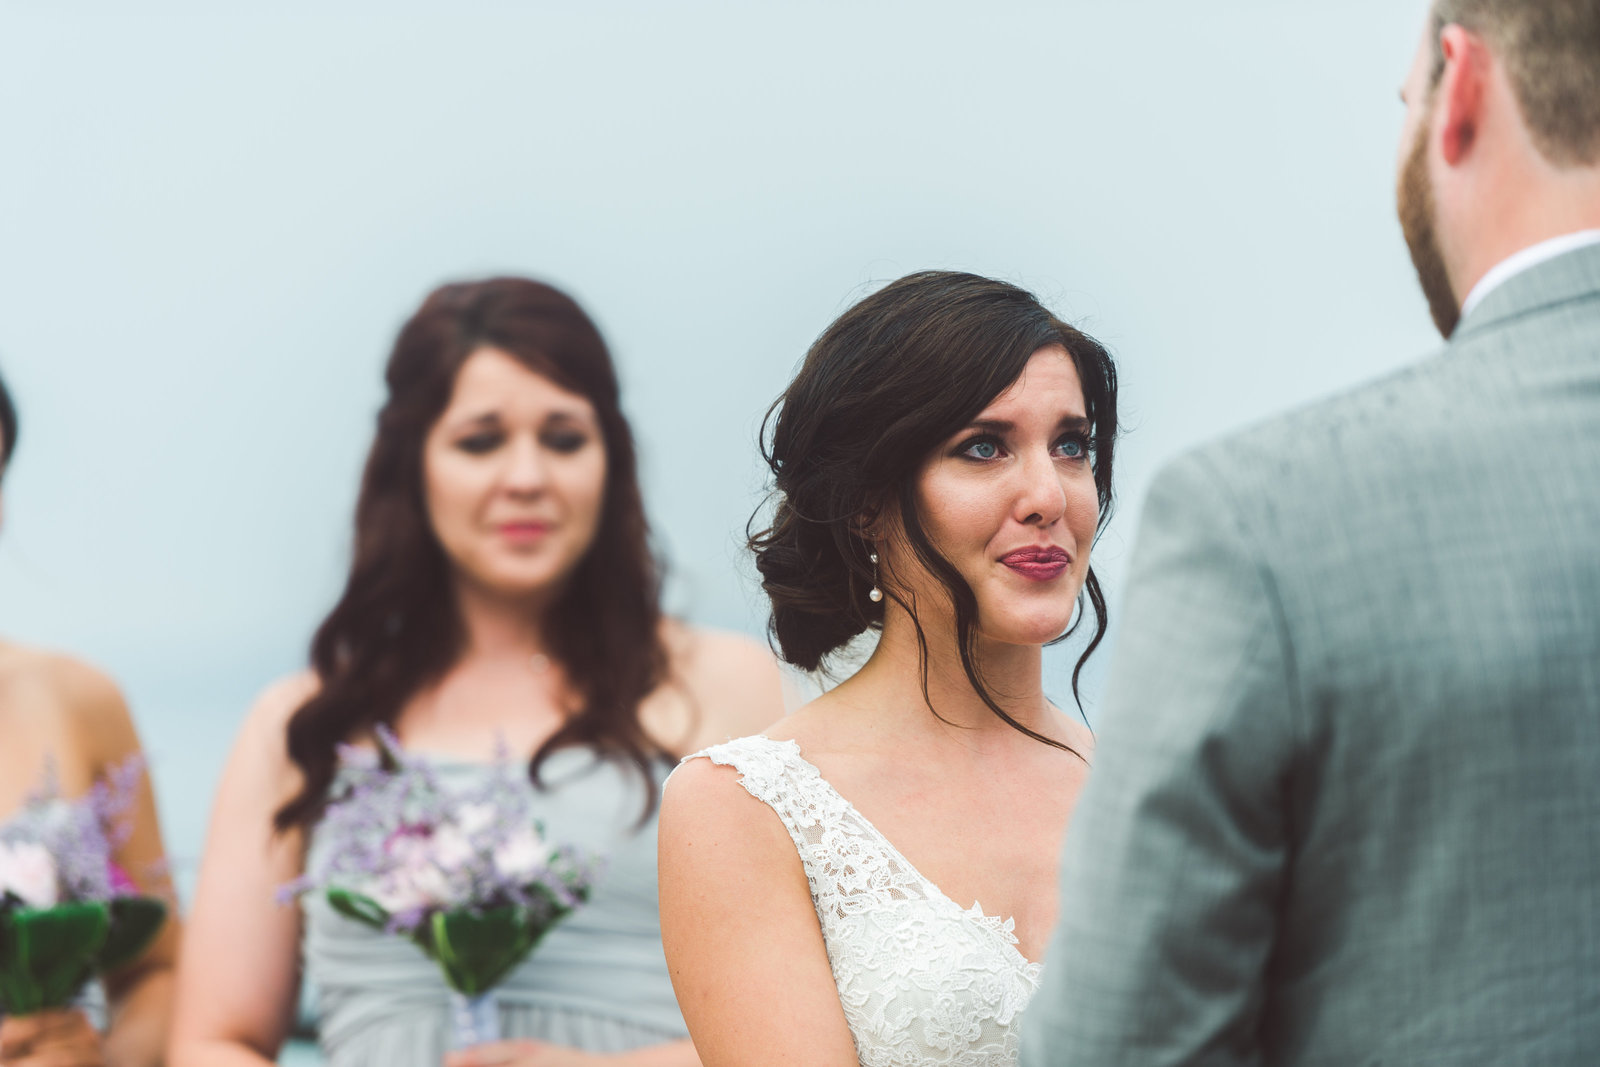 Artistic-Wedding-Photographer-39